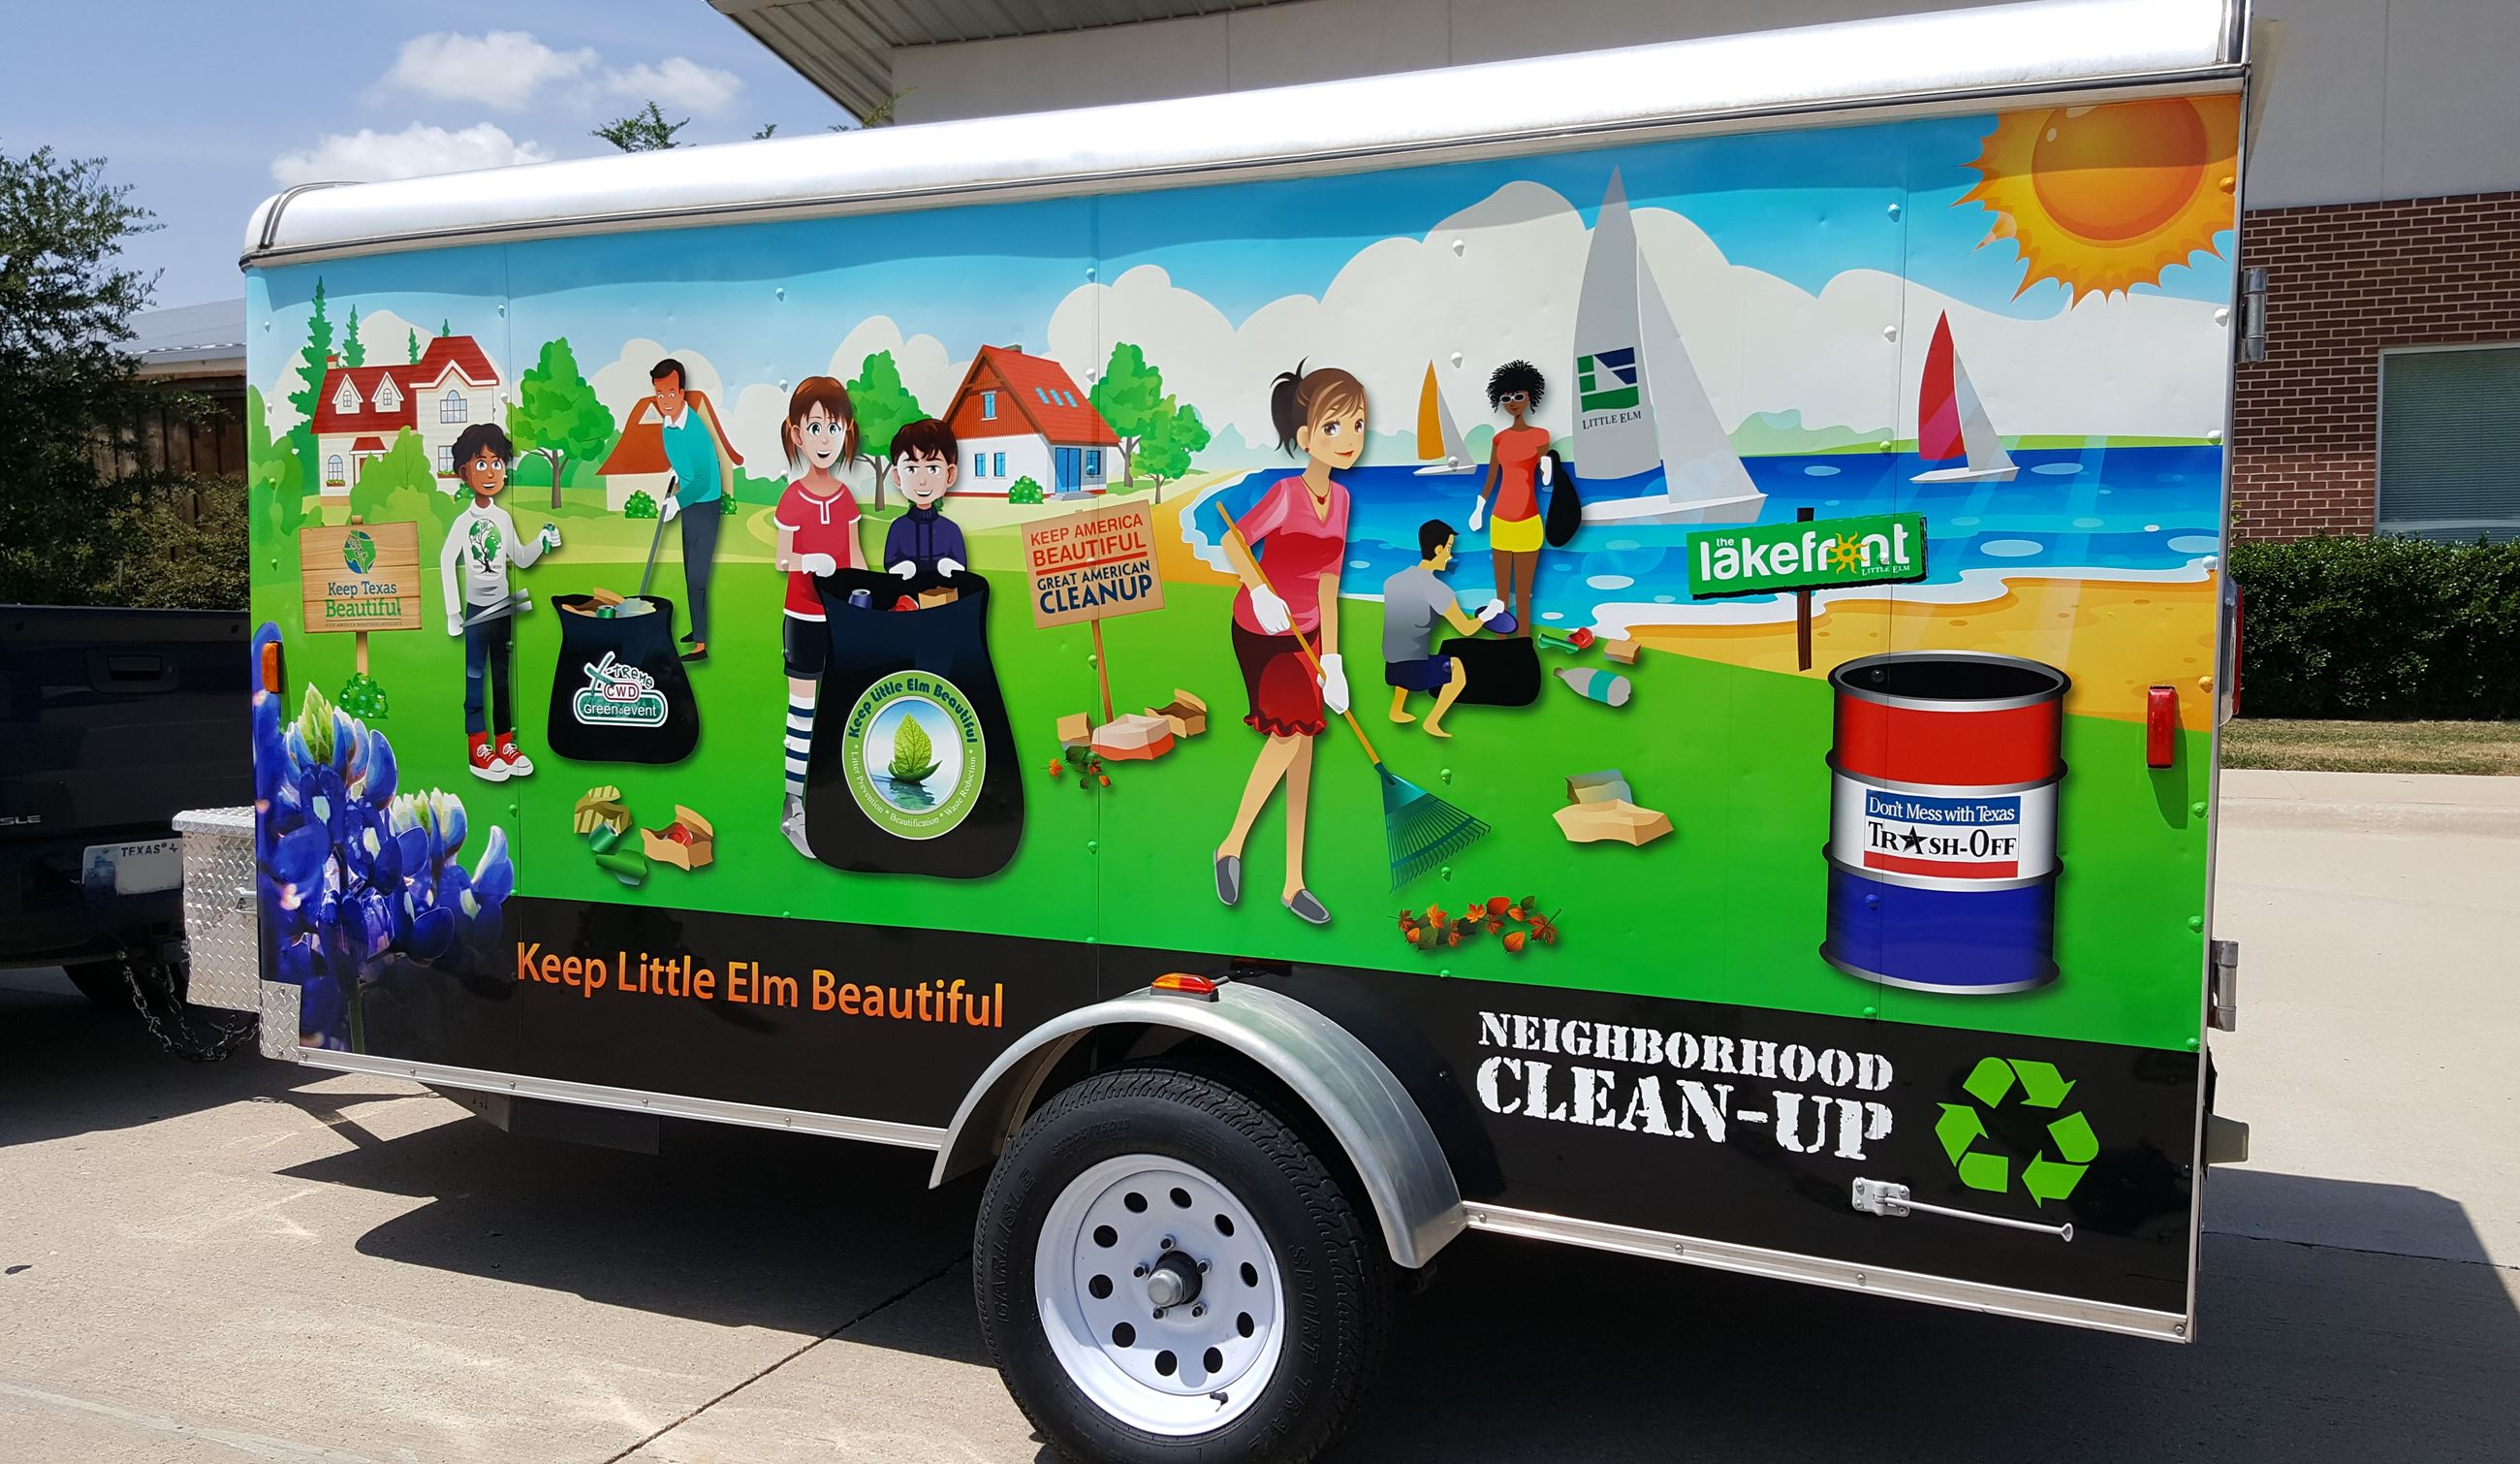 KLEB Neighborhood Clean Up Trailer